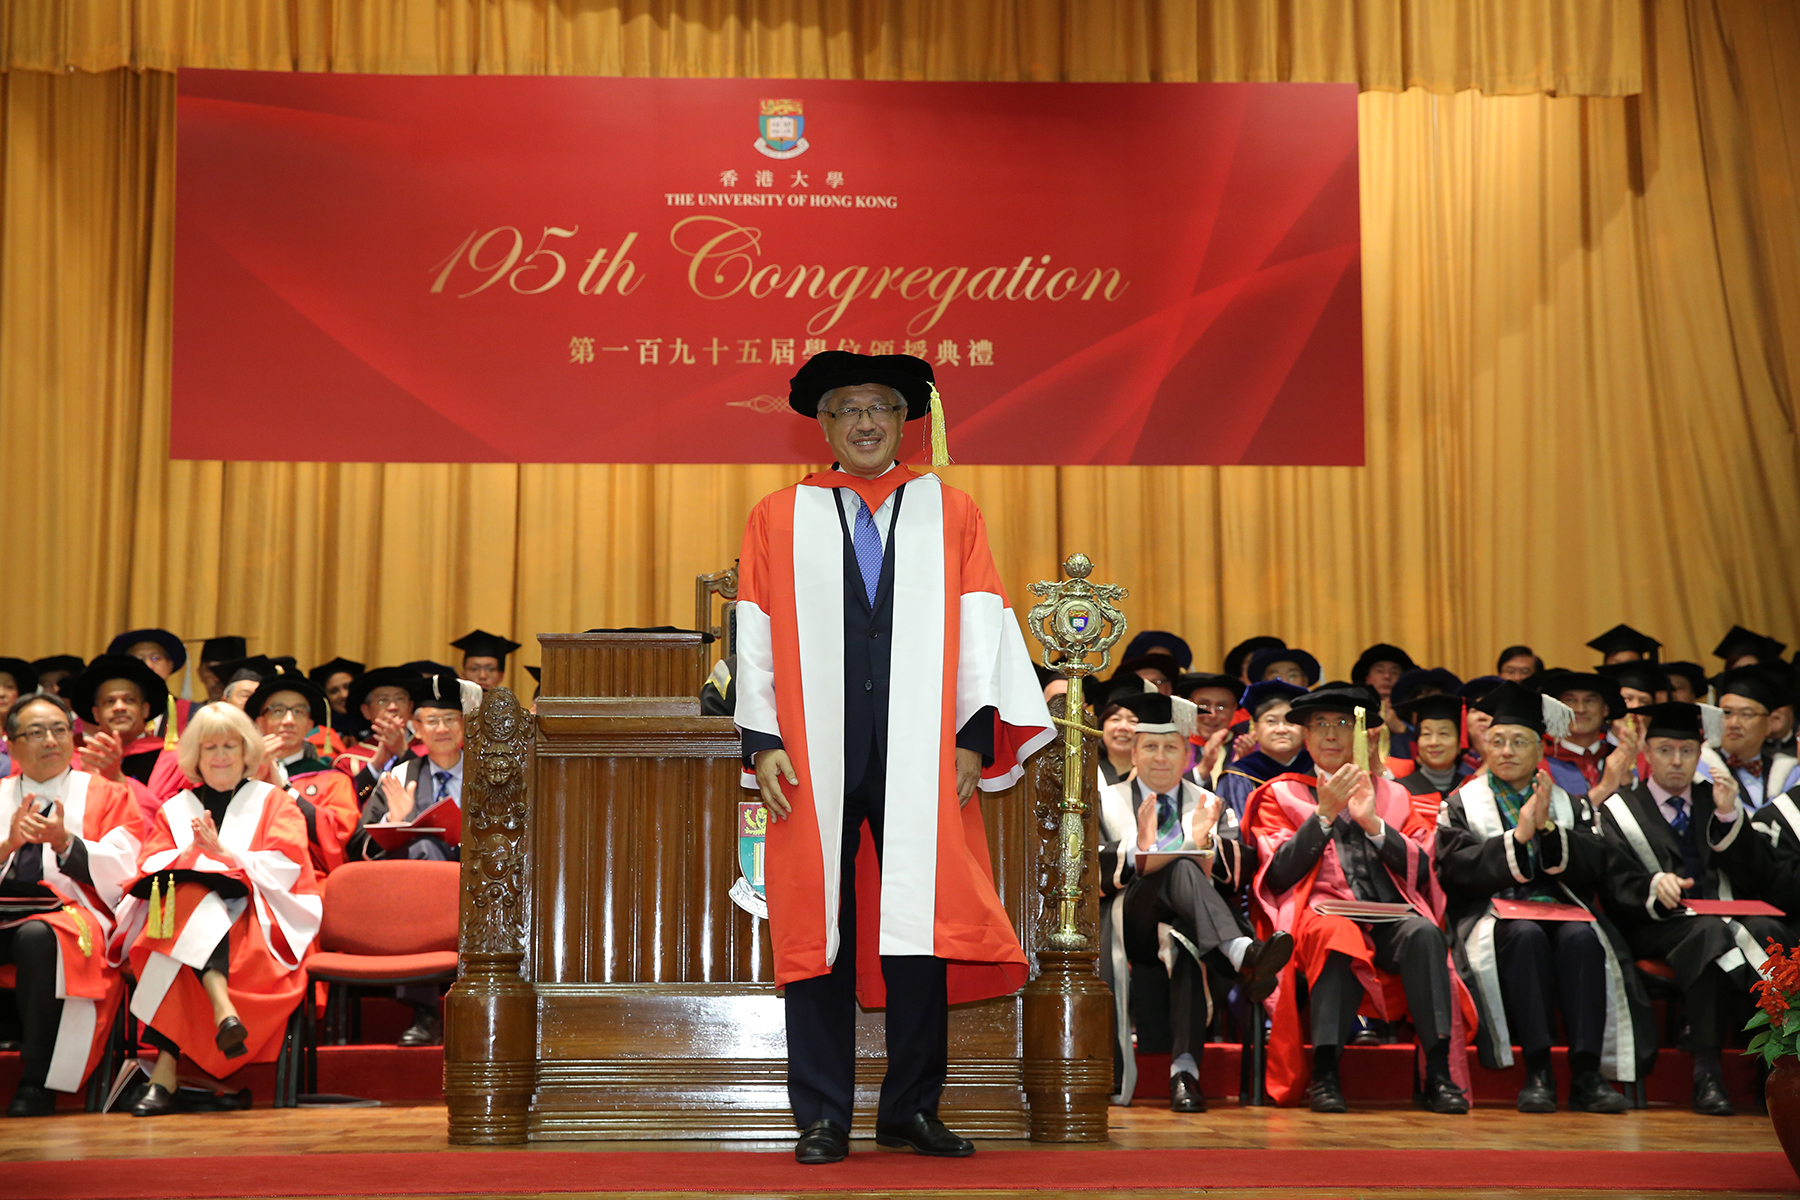 The 195th Congregation